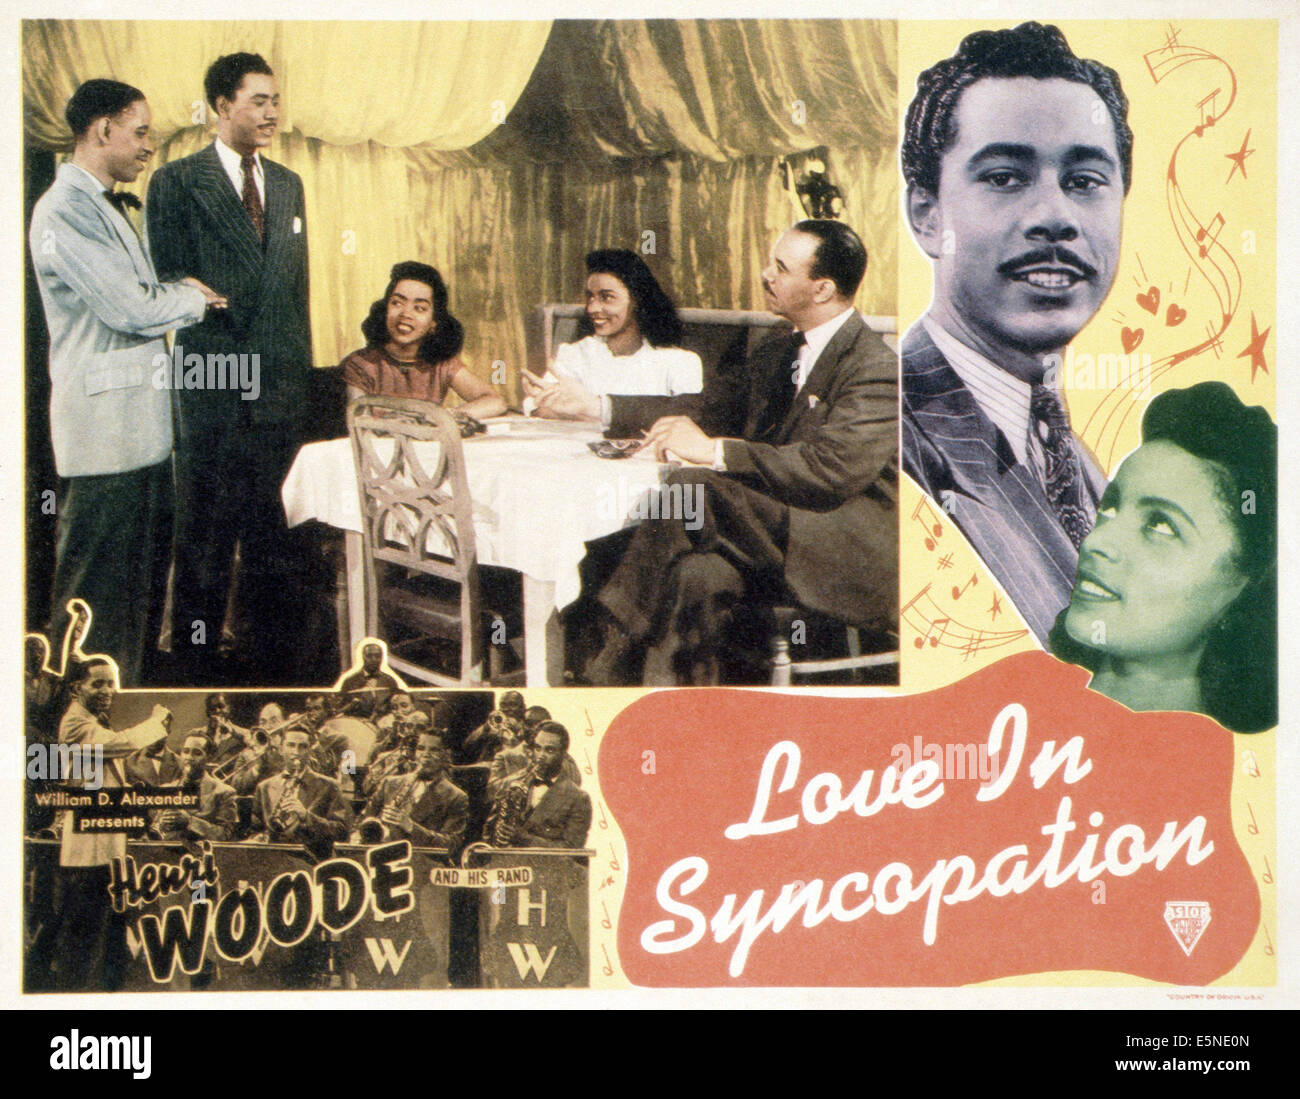 LOVE IN SYNCOPATION, Henri Woode and his Band (bottom), 1940s - Stock Image